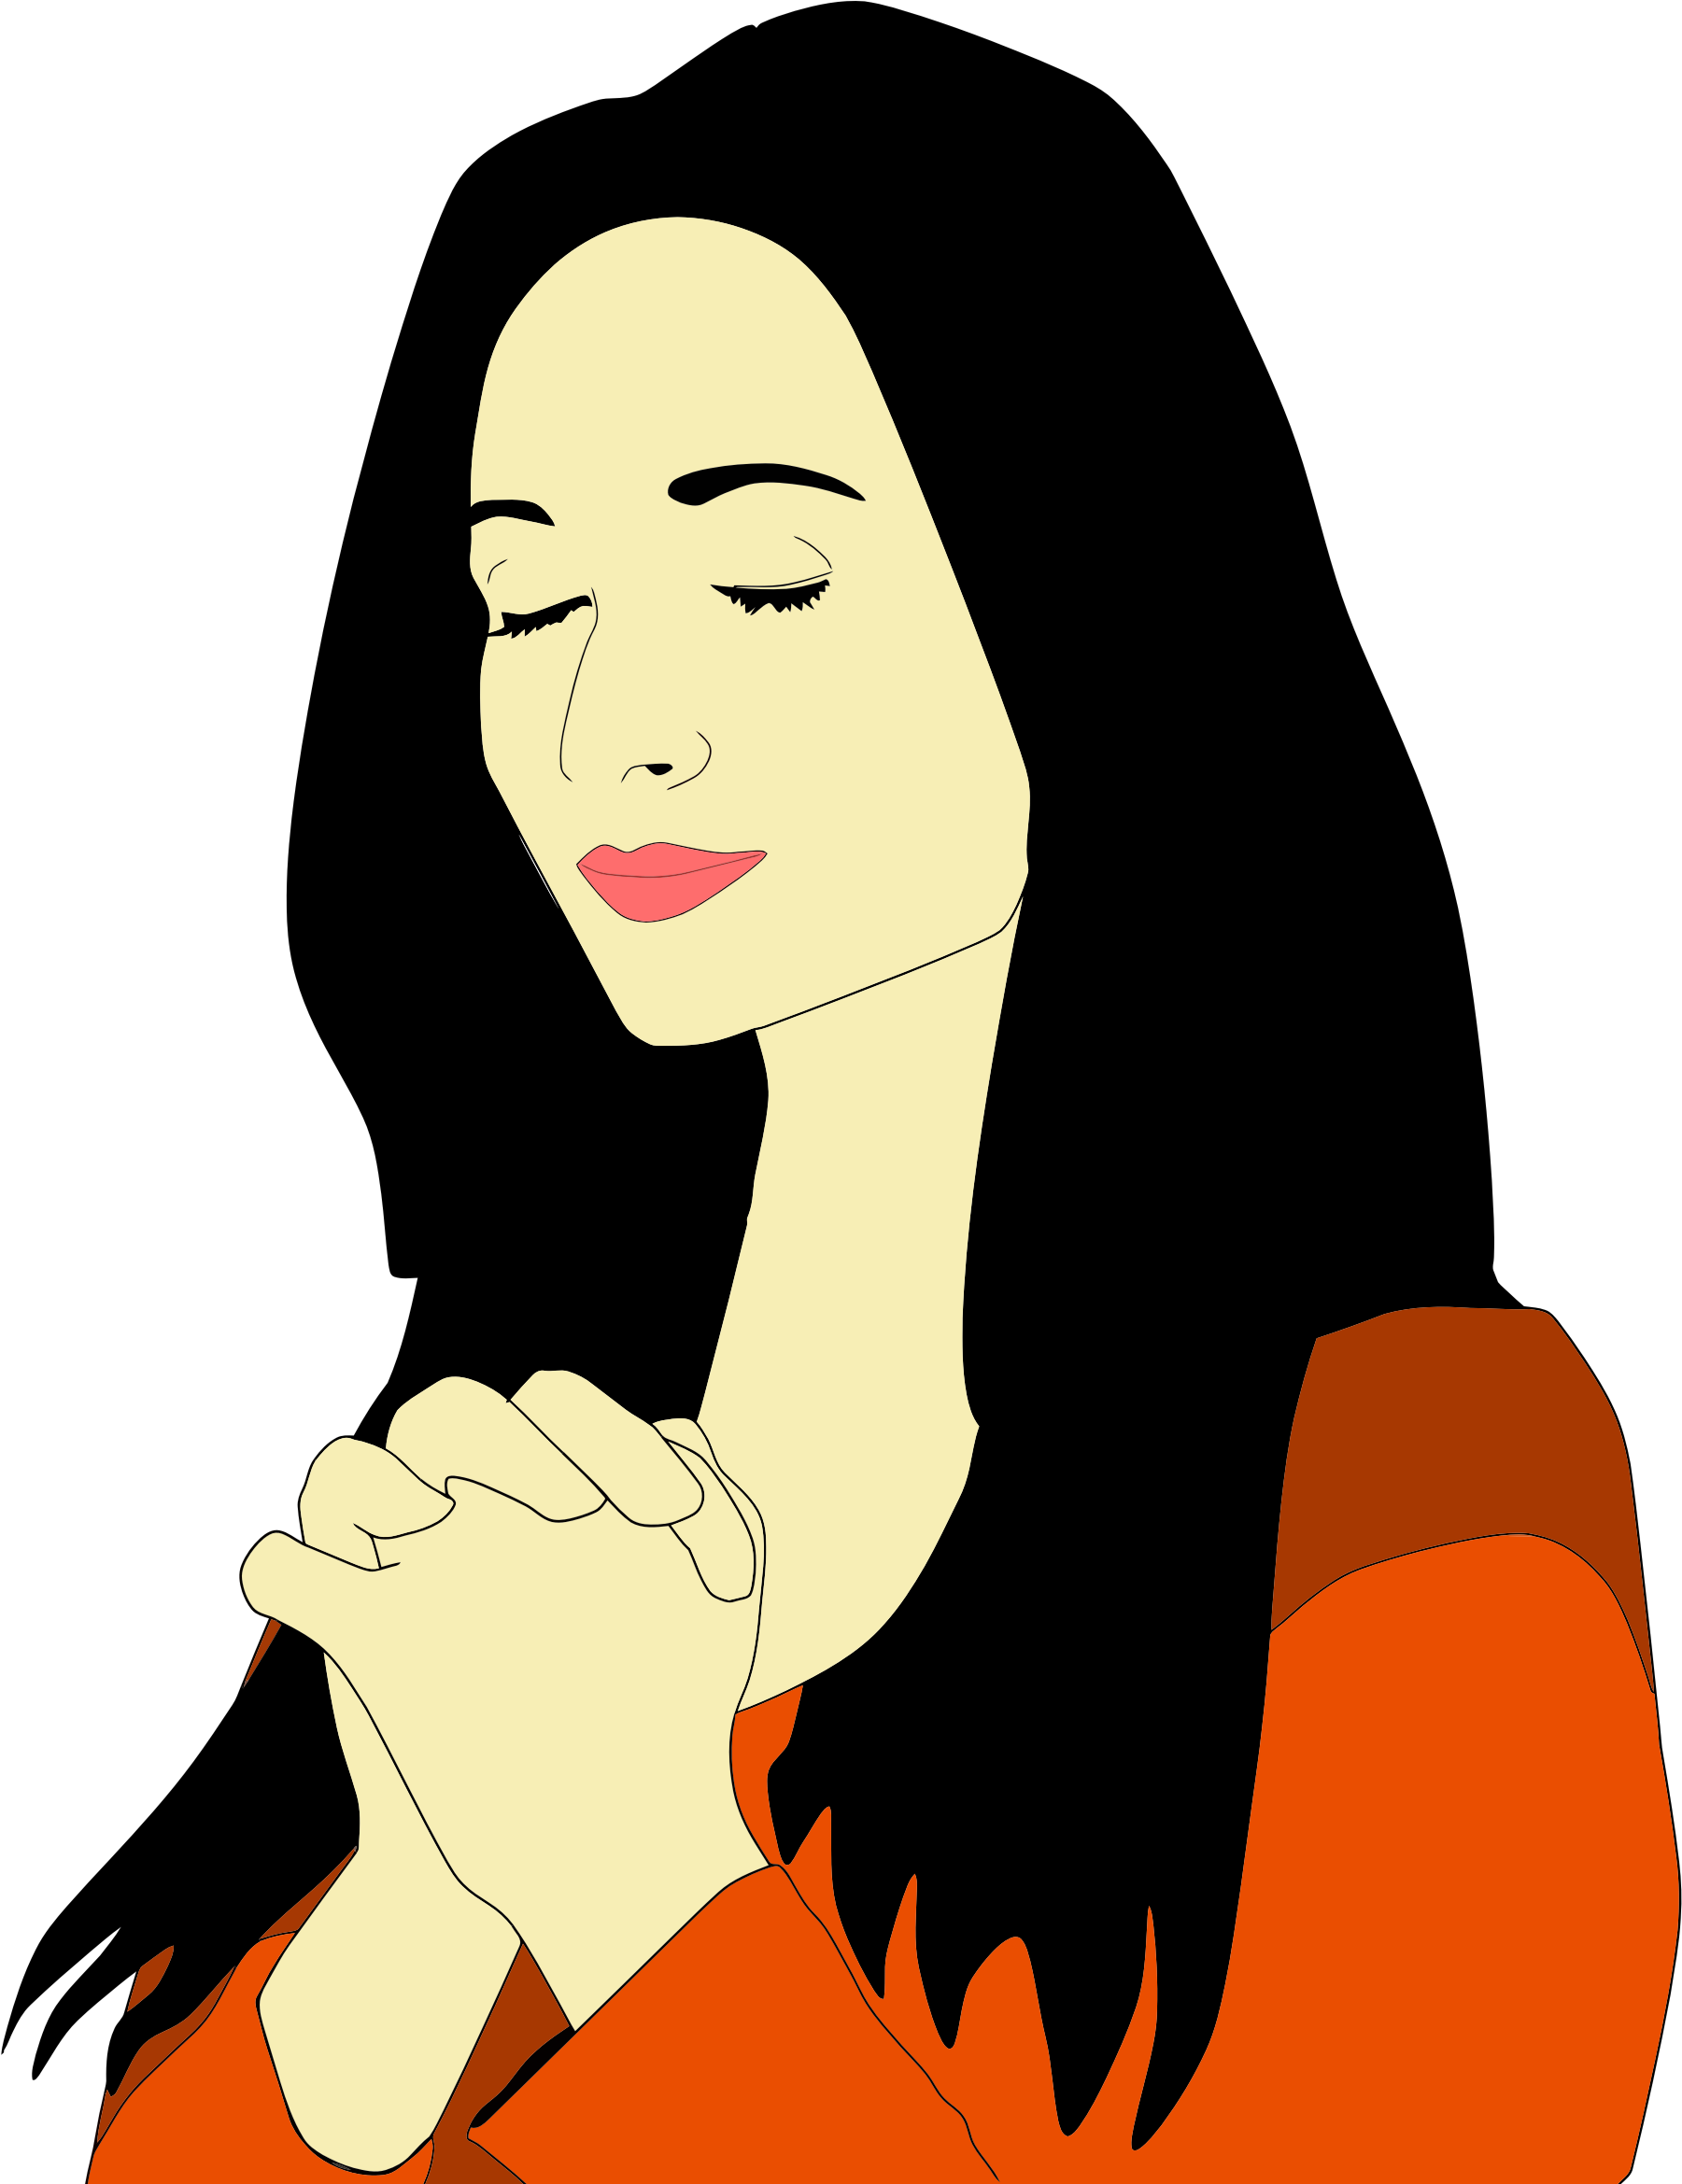 Empty tomb clipart cartoon. Silhouette woman praying at